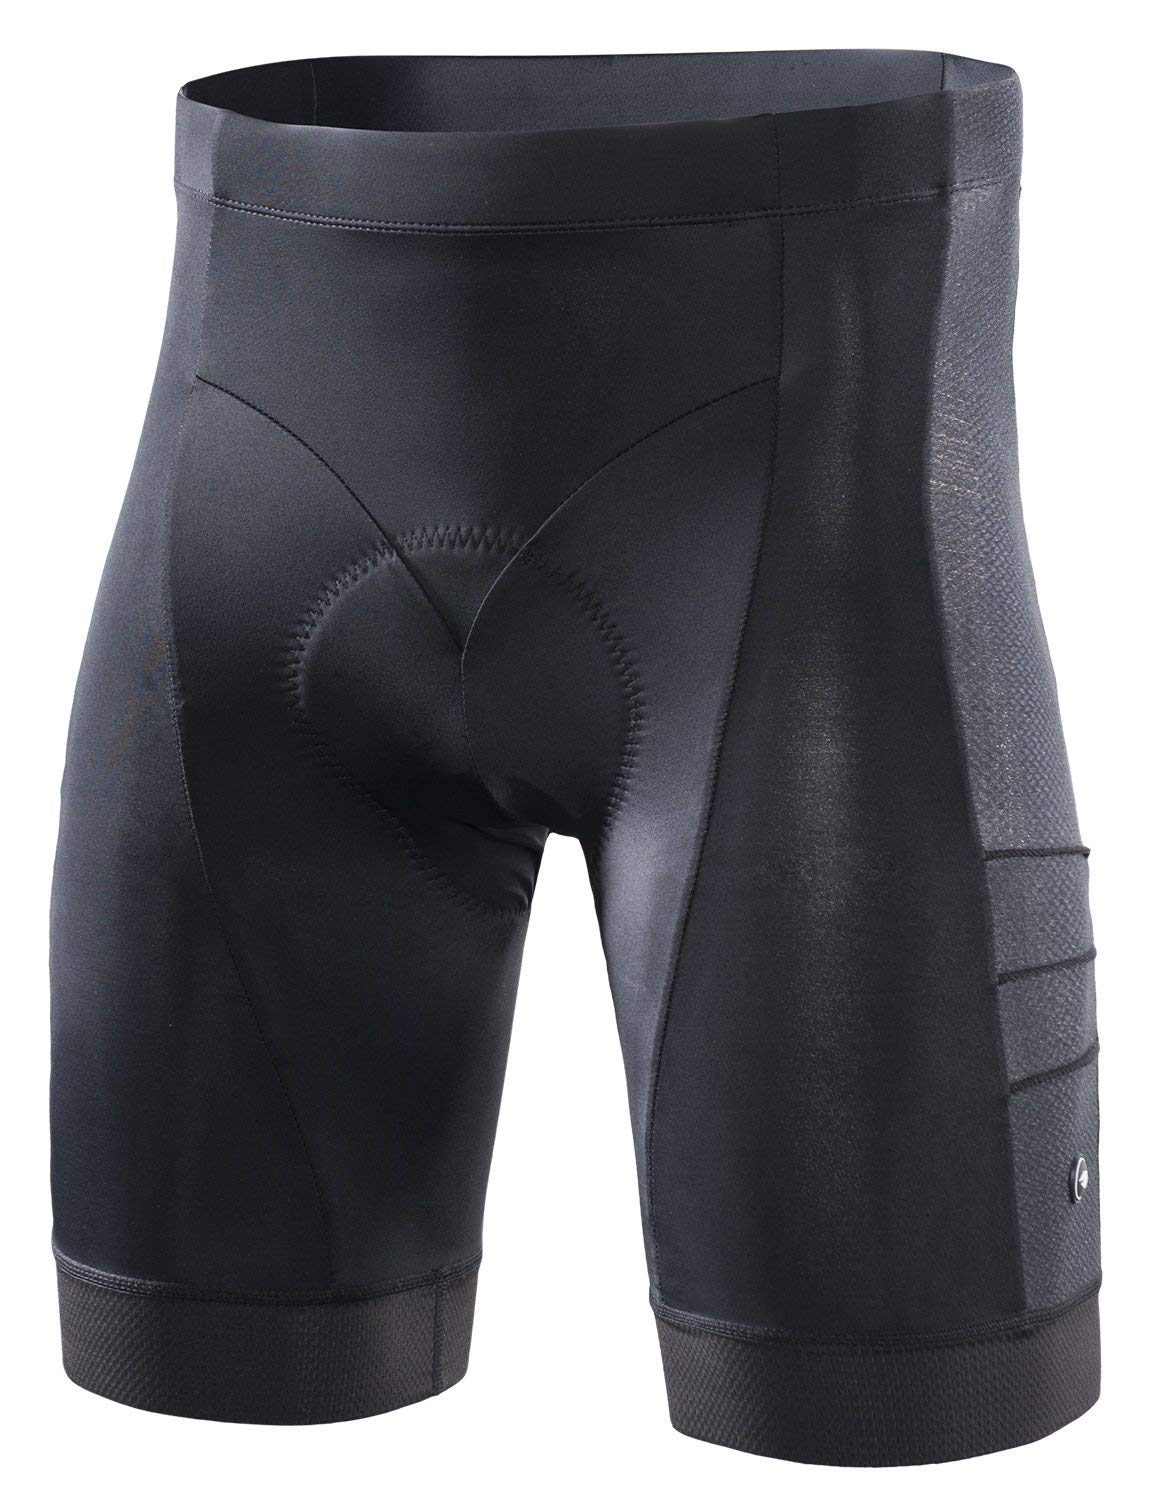 RION Men s Cycling Padded Shorts Bike Tights Bicycle Pants product image 5696db5fb